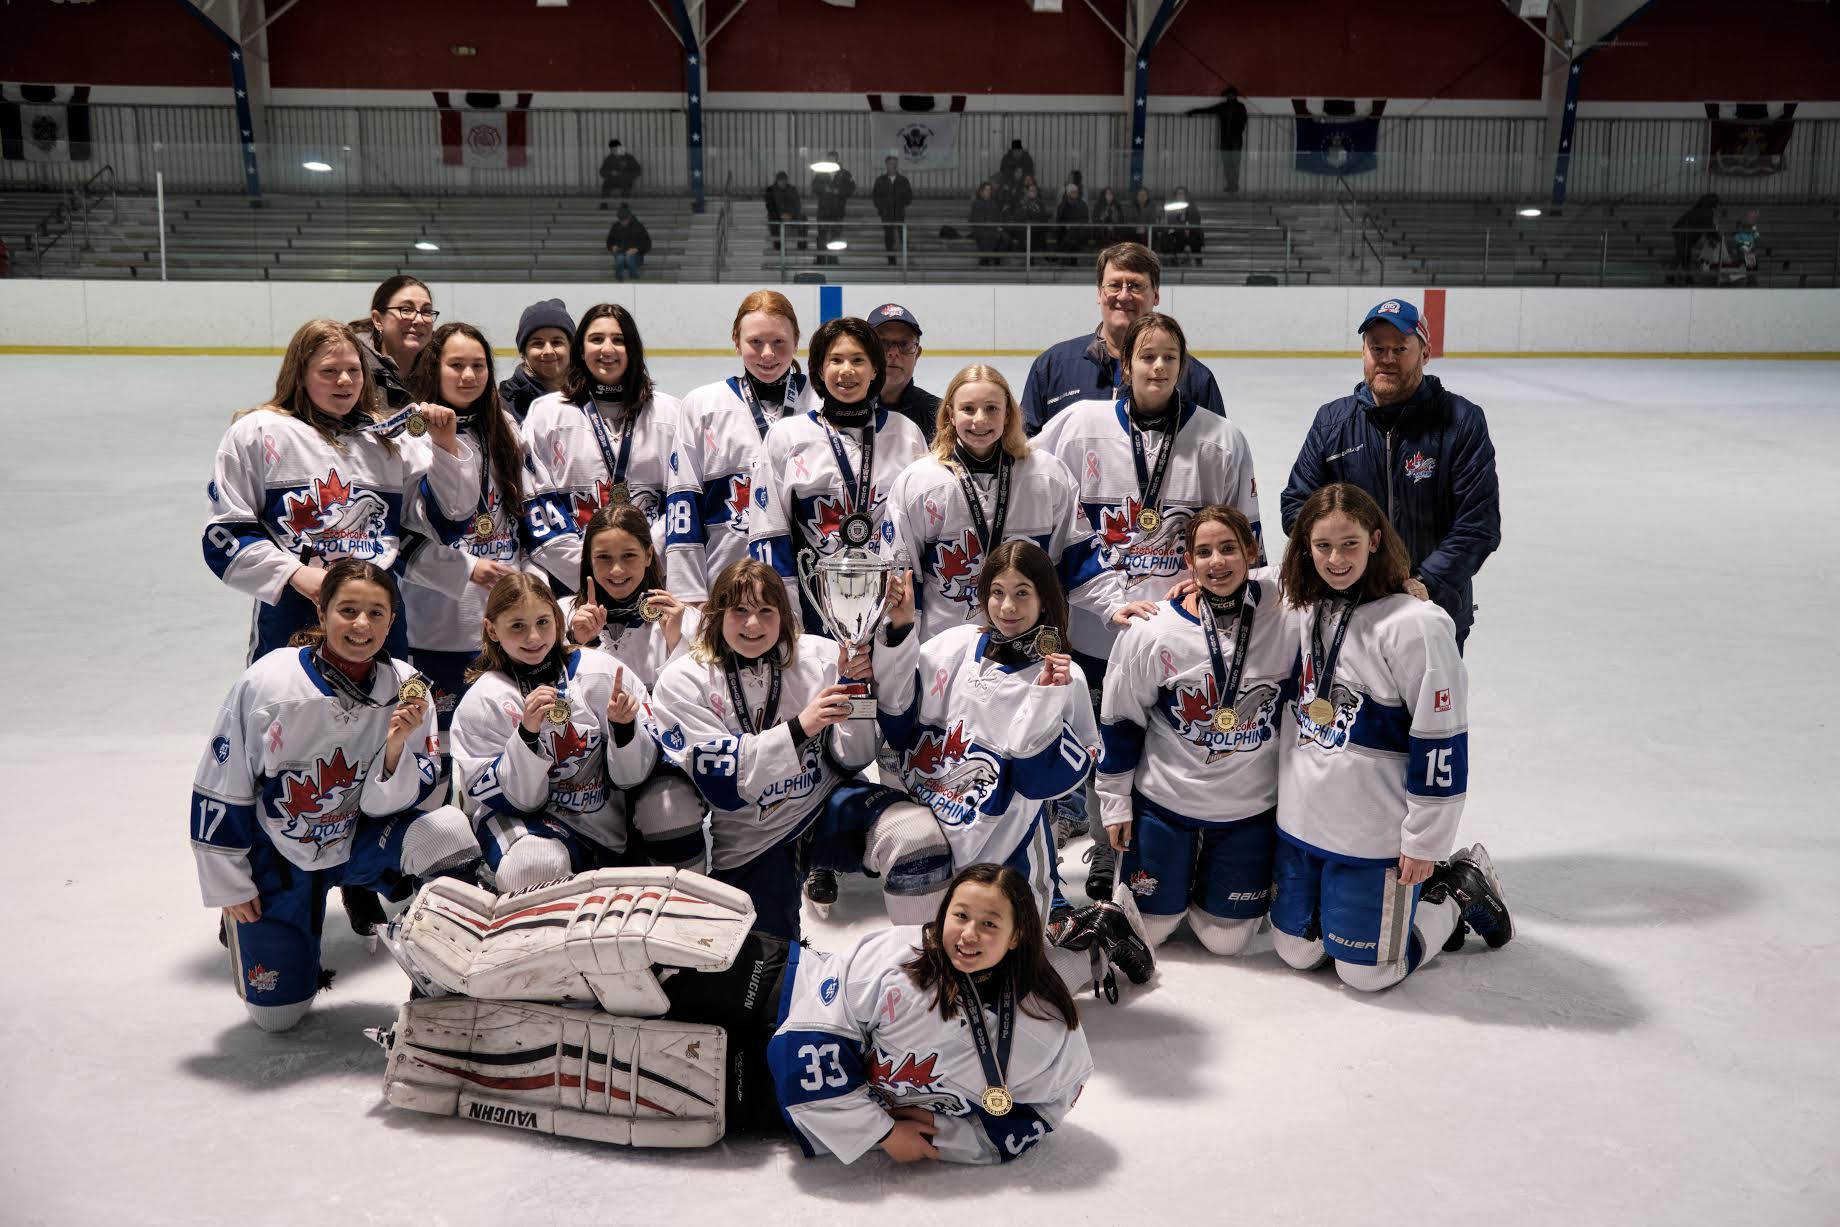 PeeWee BB Take Home Gold at Detroit Motown Classic